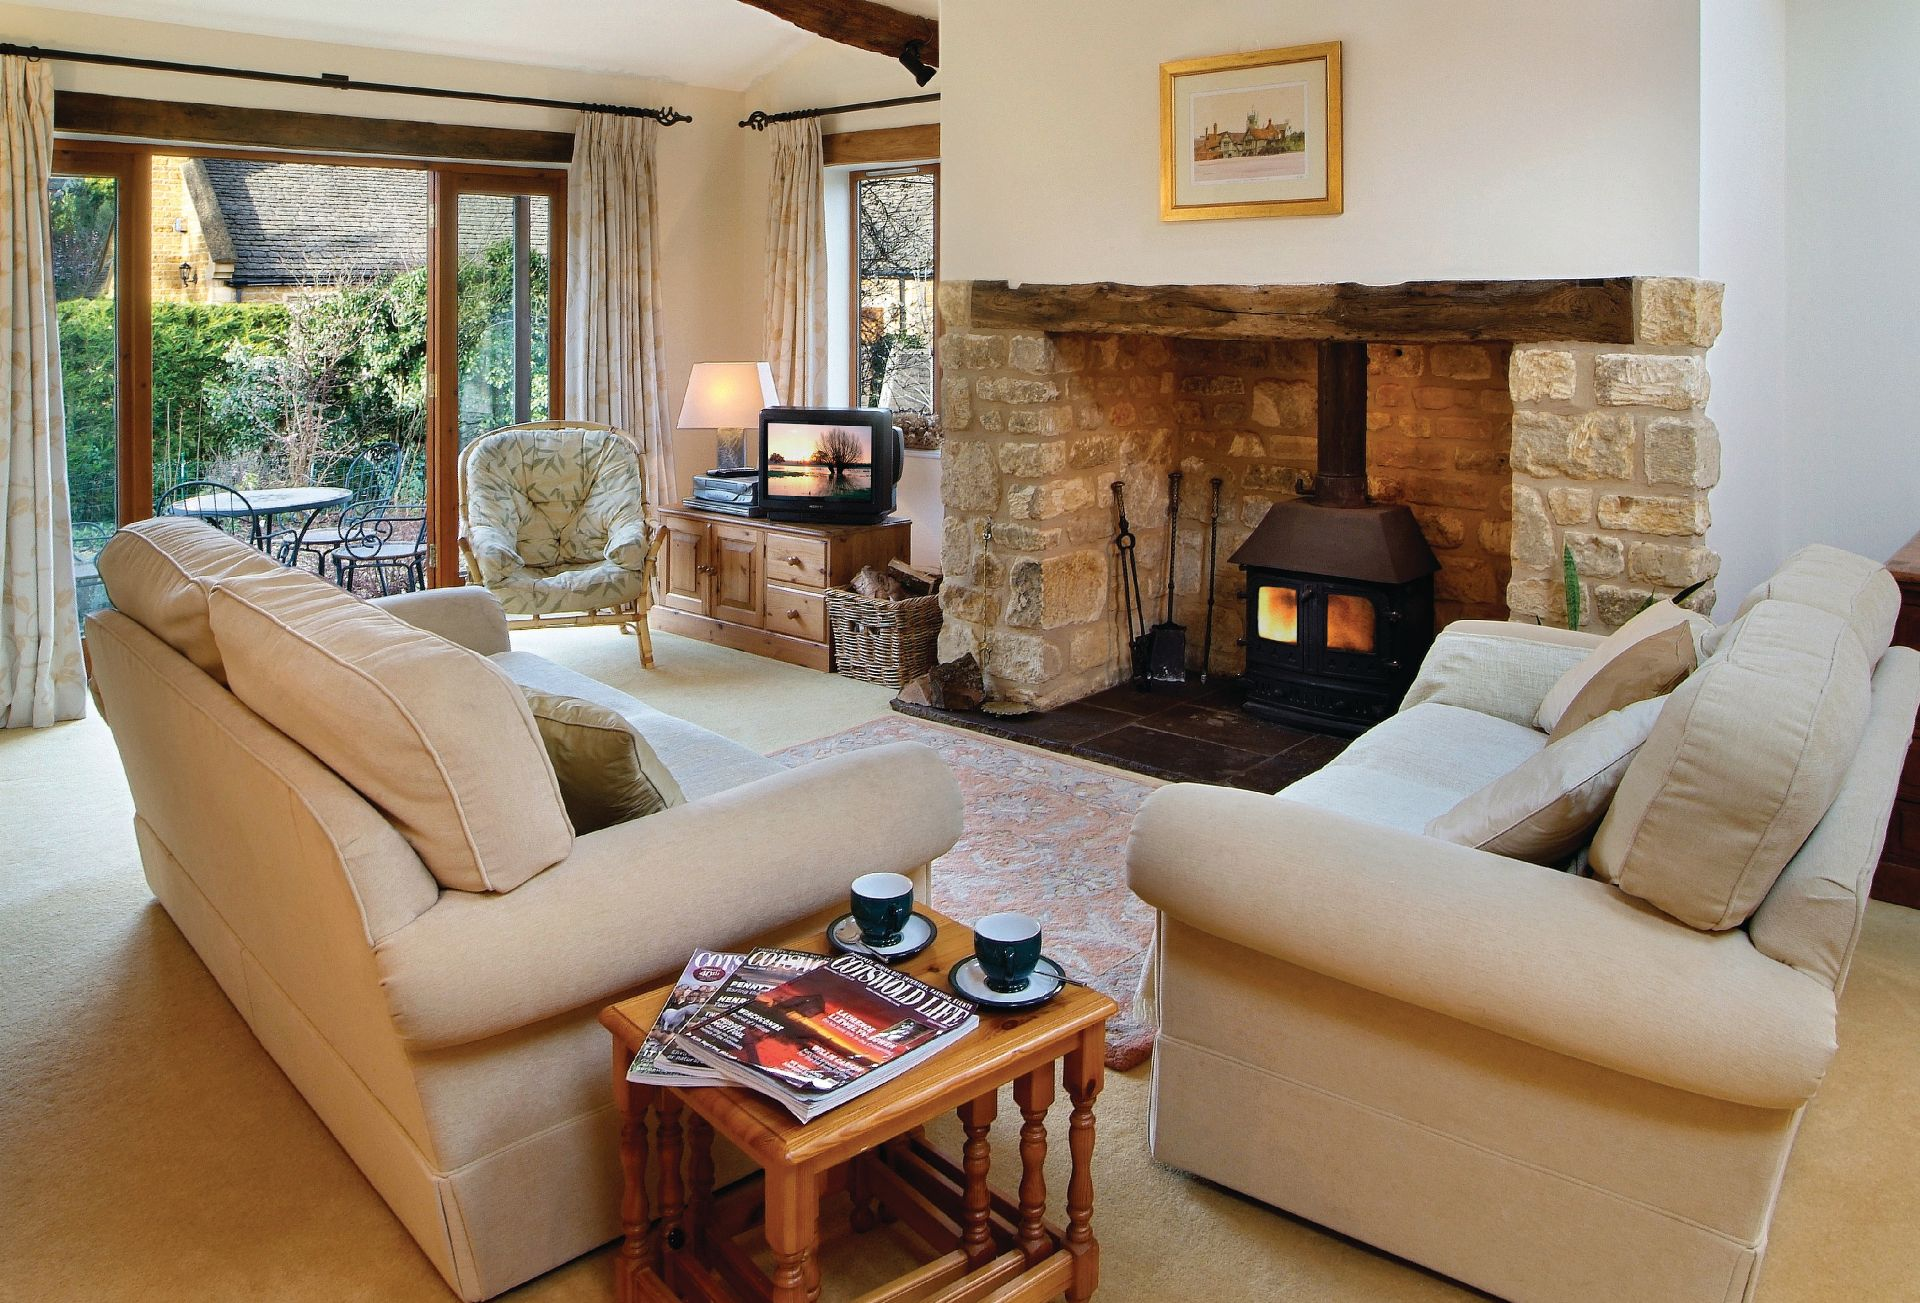 Ground floor: Sitting room with wood burning stove and french doors to garden